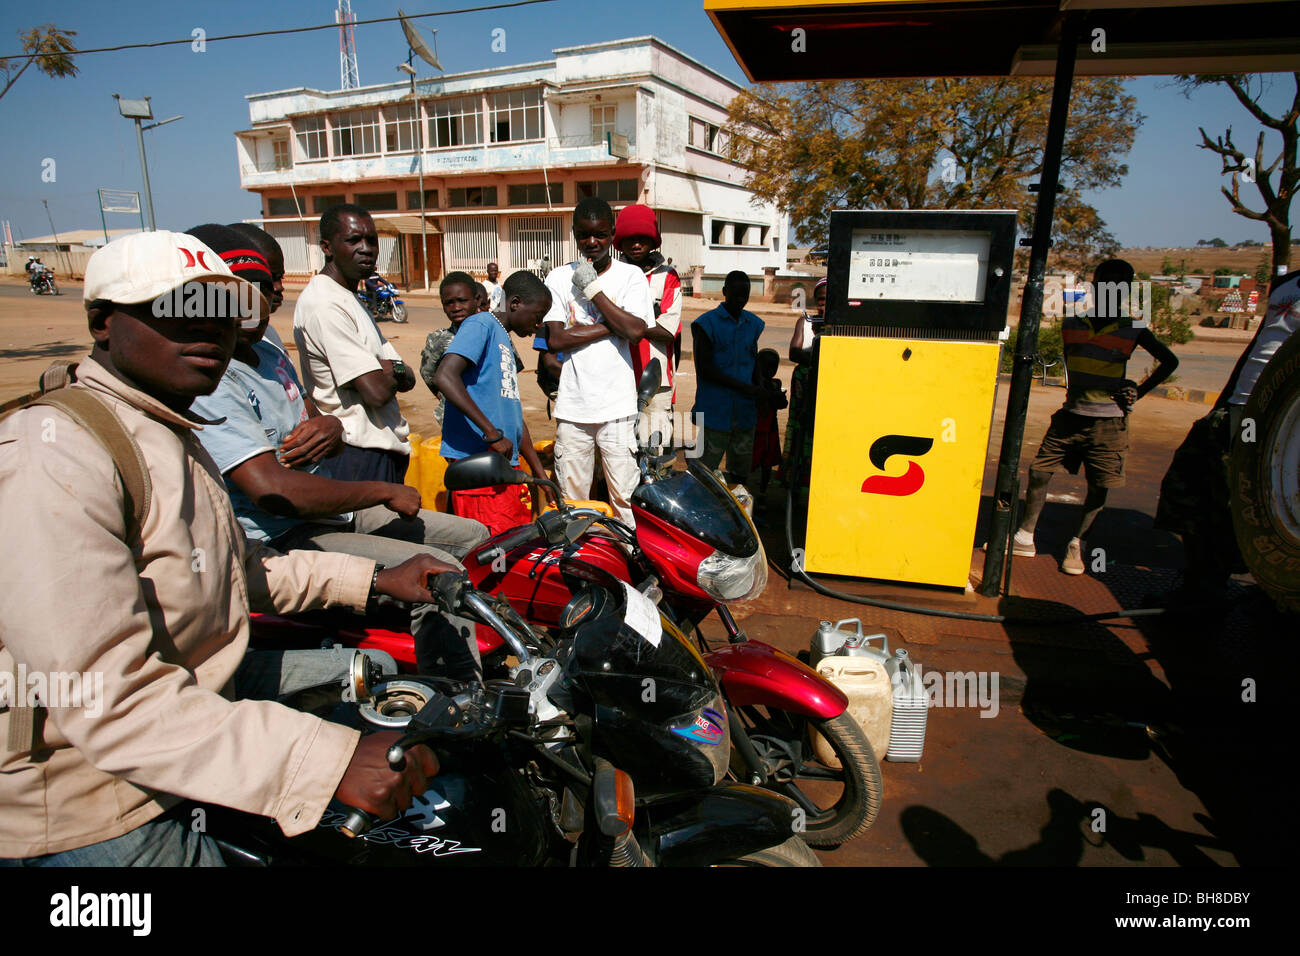 People queue for fuel at a service station in Menongue, Angola, Africa. - Stock Image